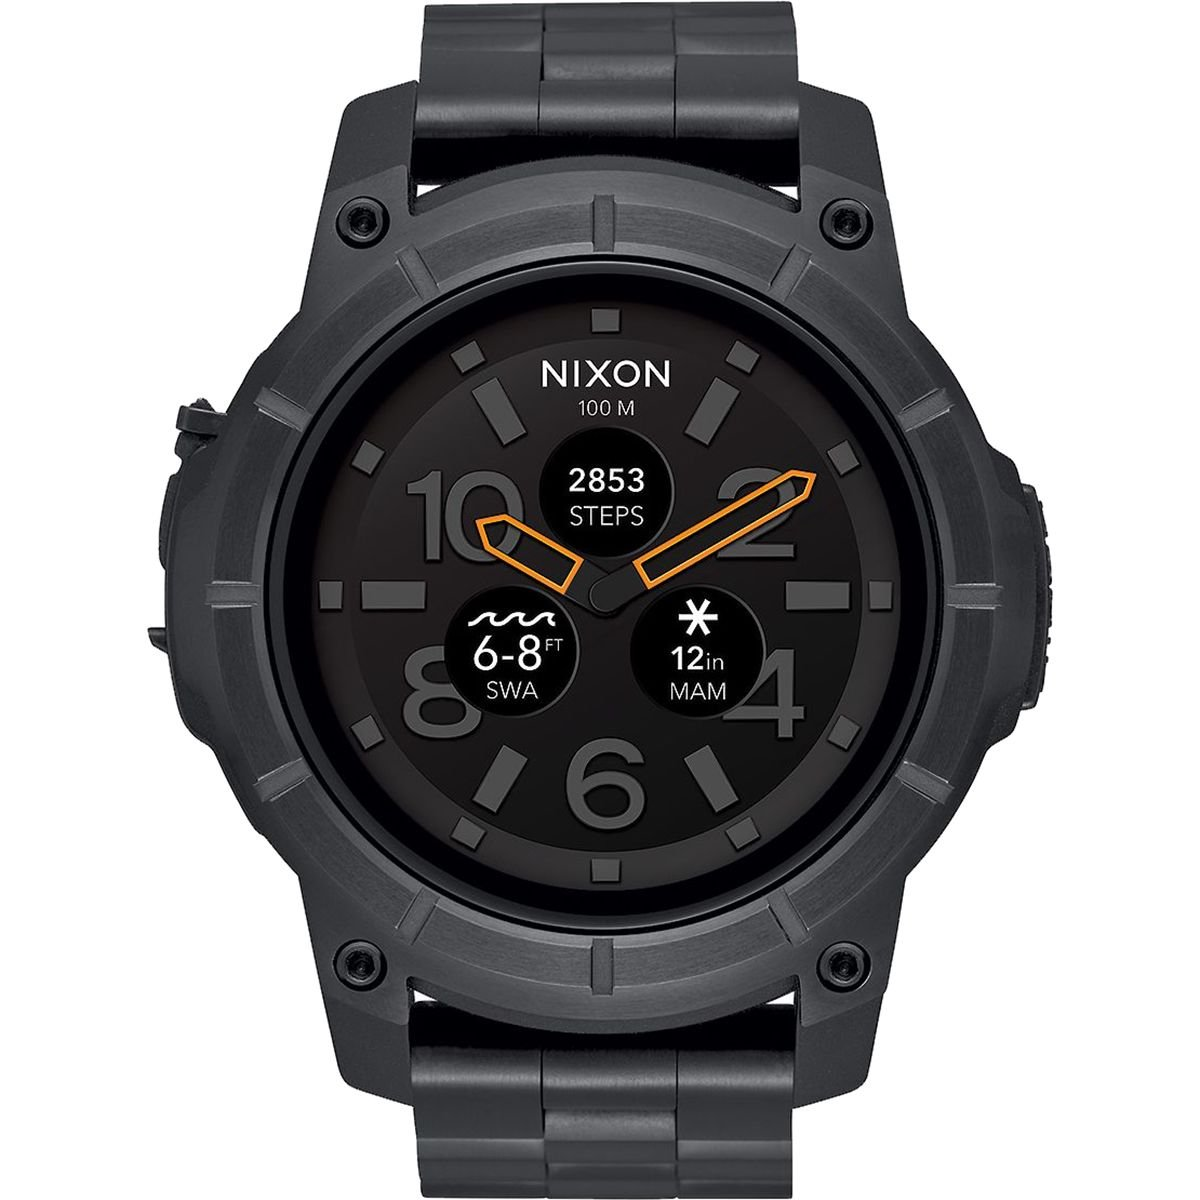 Nixon A1216-000 Mission SS Mens Watch Black 48mm Custom Injection Molded Fiber Reinforced...